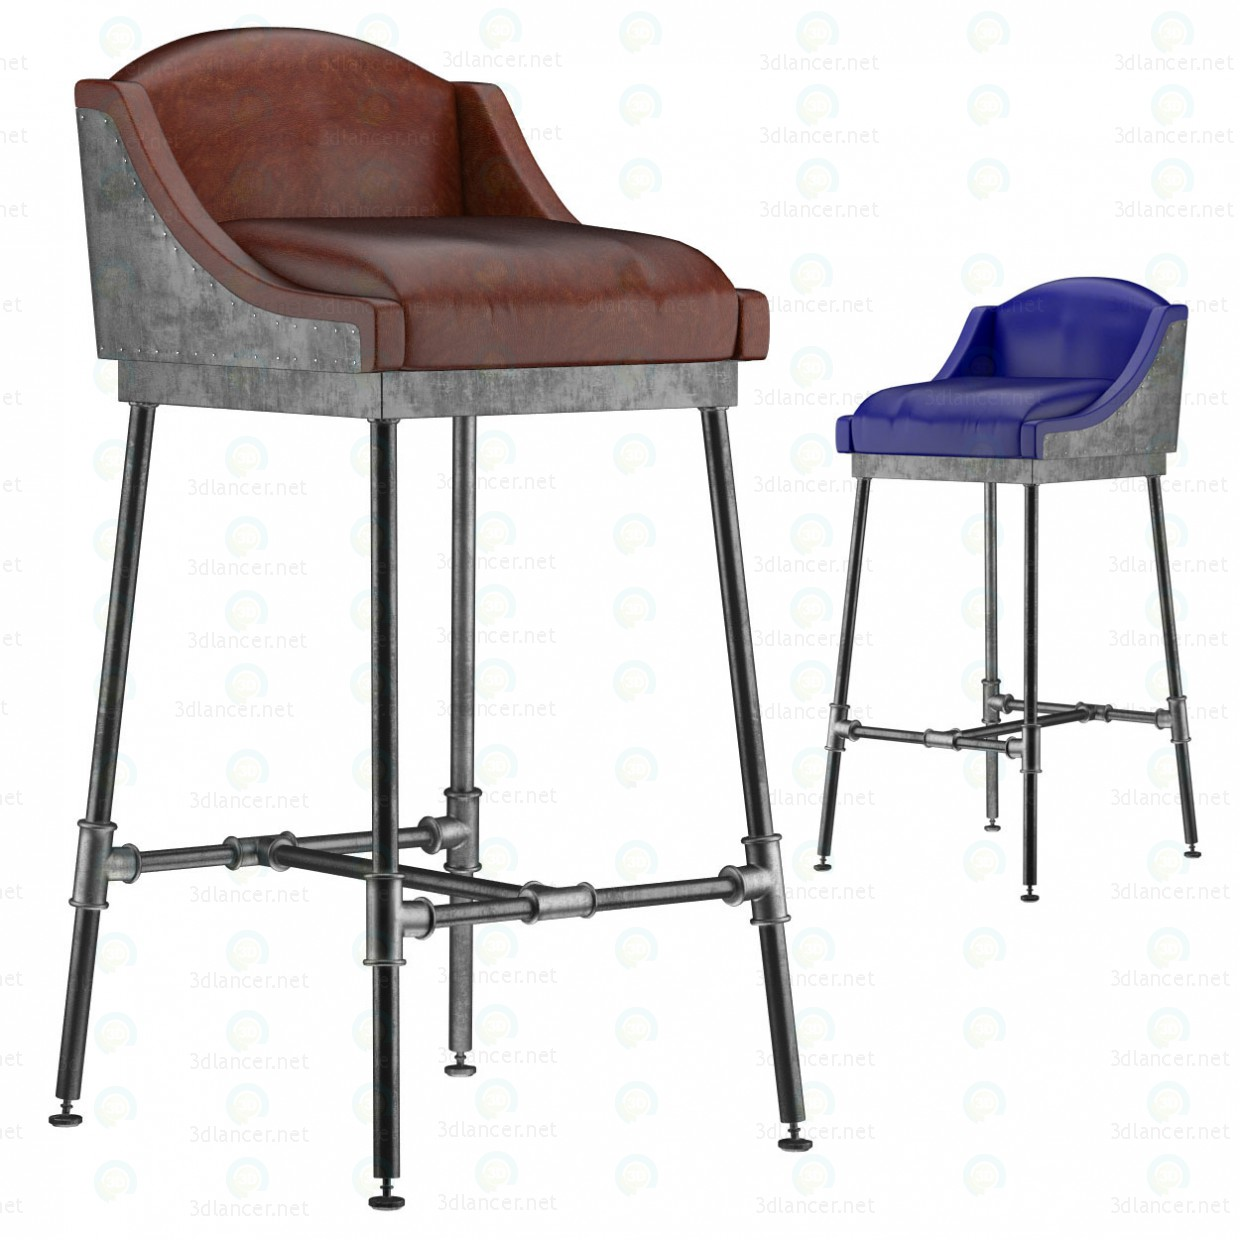 3d IRON SCAFFOLD BAR STOOL (6 colors) model buy - render